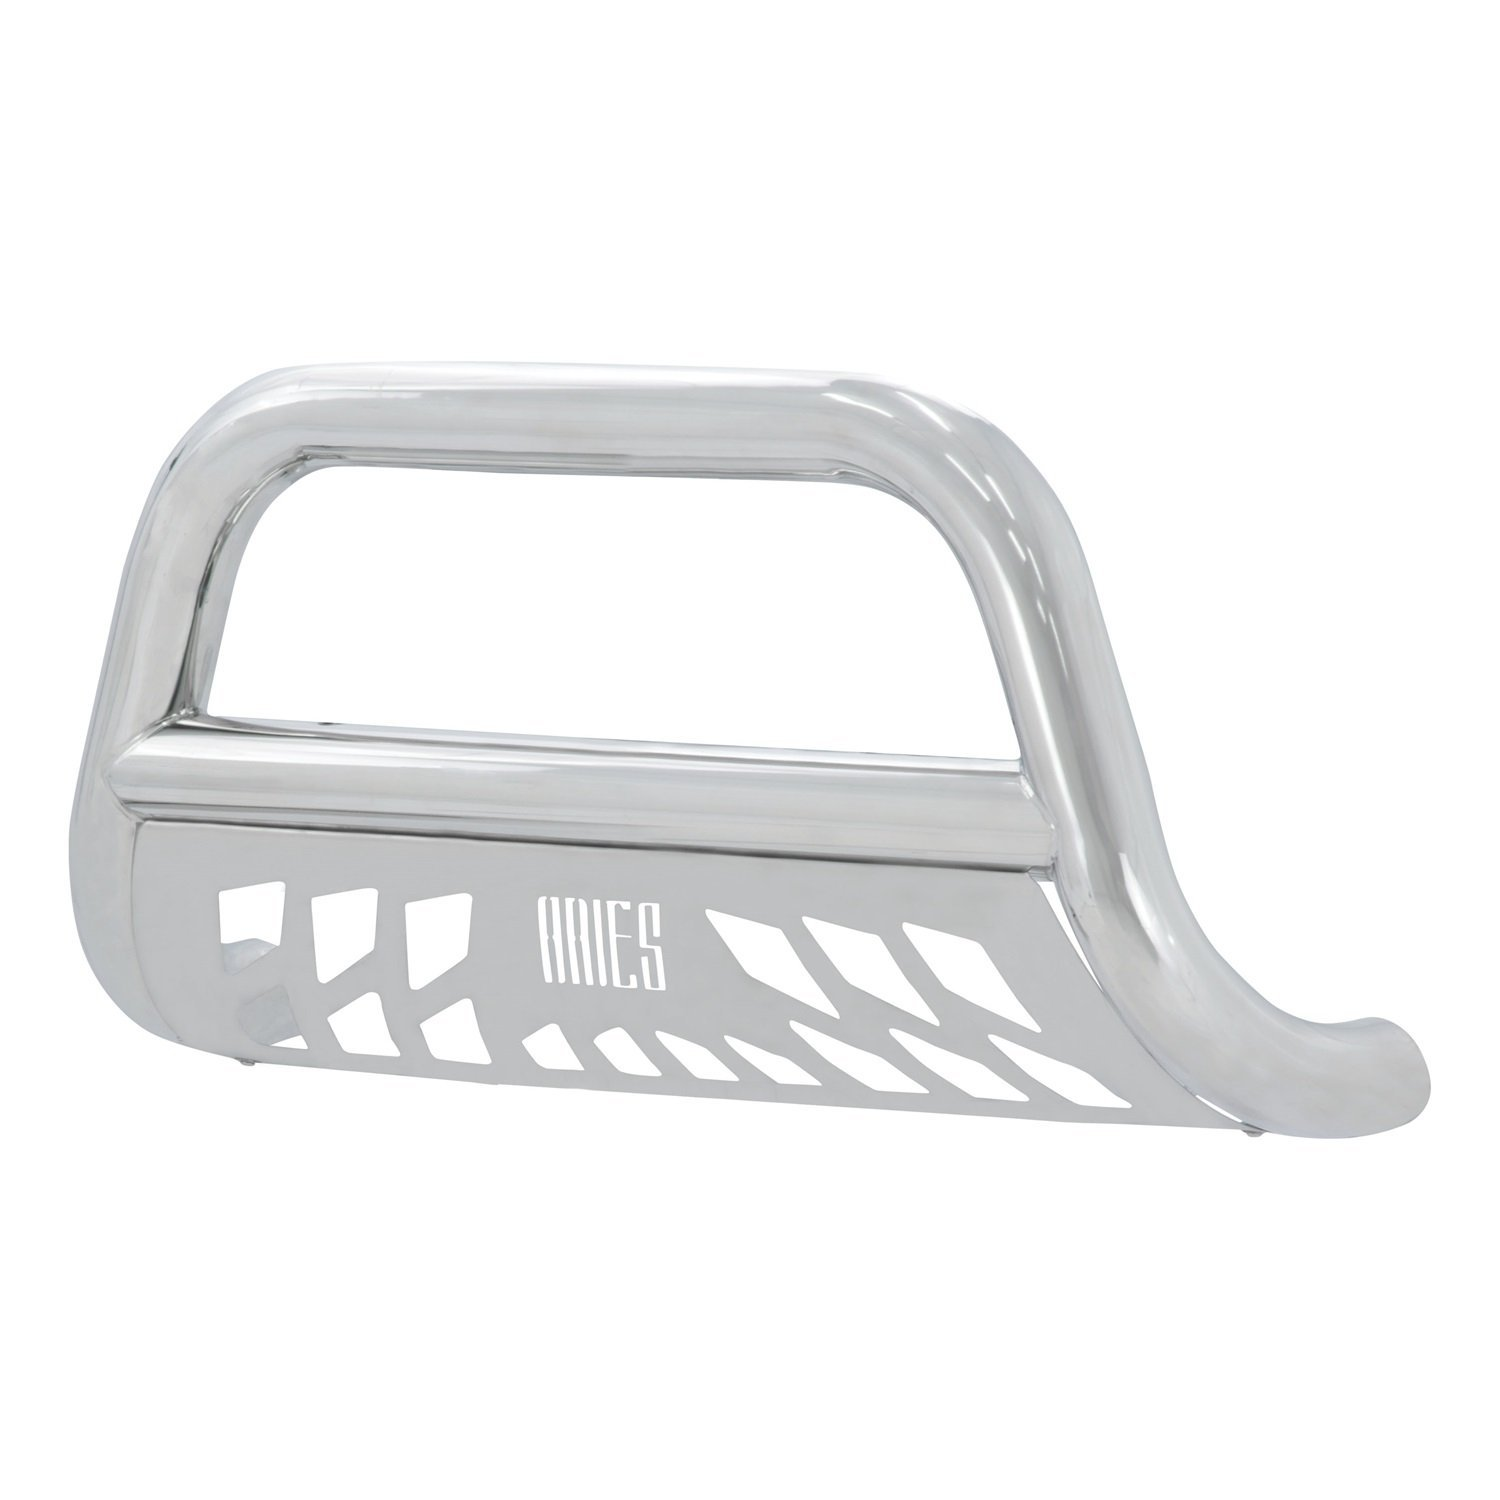 Aries 35-4008 Stainless Steel Bull Bar with Skid Plate